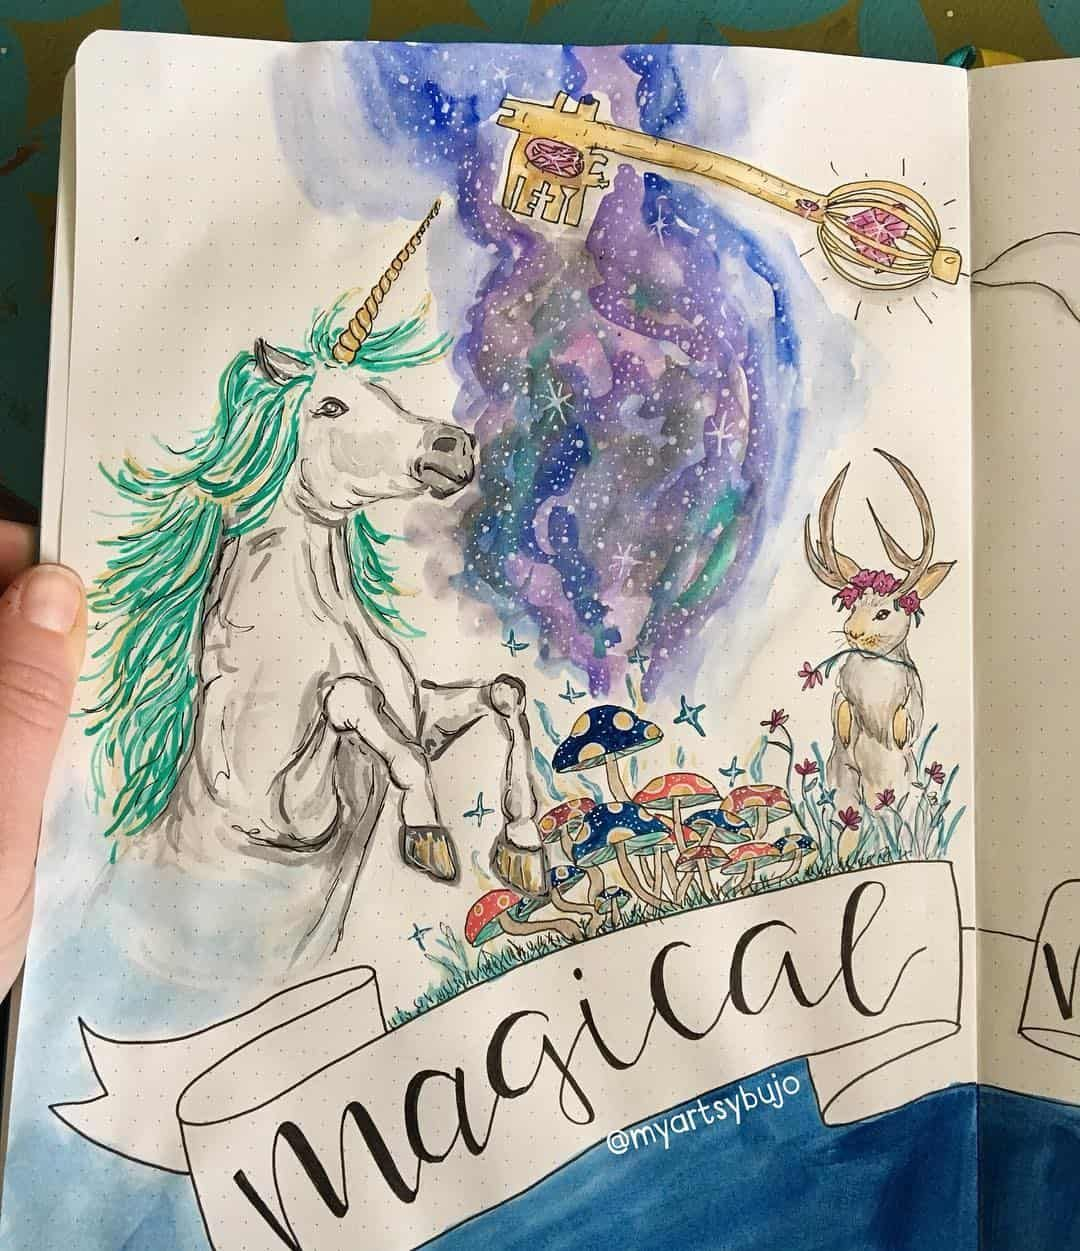 10 Magical Unicorn Bullet Journal Layouts to Help You Sparkle - Bullet journal layout, Journal layout, Unicorn illustration, Bullet journal hacks, Bullet journal, Drawings - If you love unicorns and magic then you can't fail to be inspired by this collection of unicorn bullet journal layouts